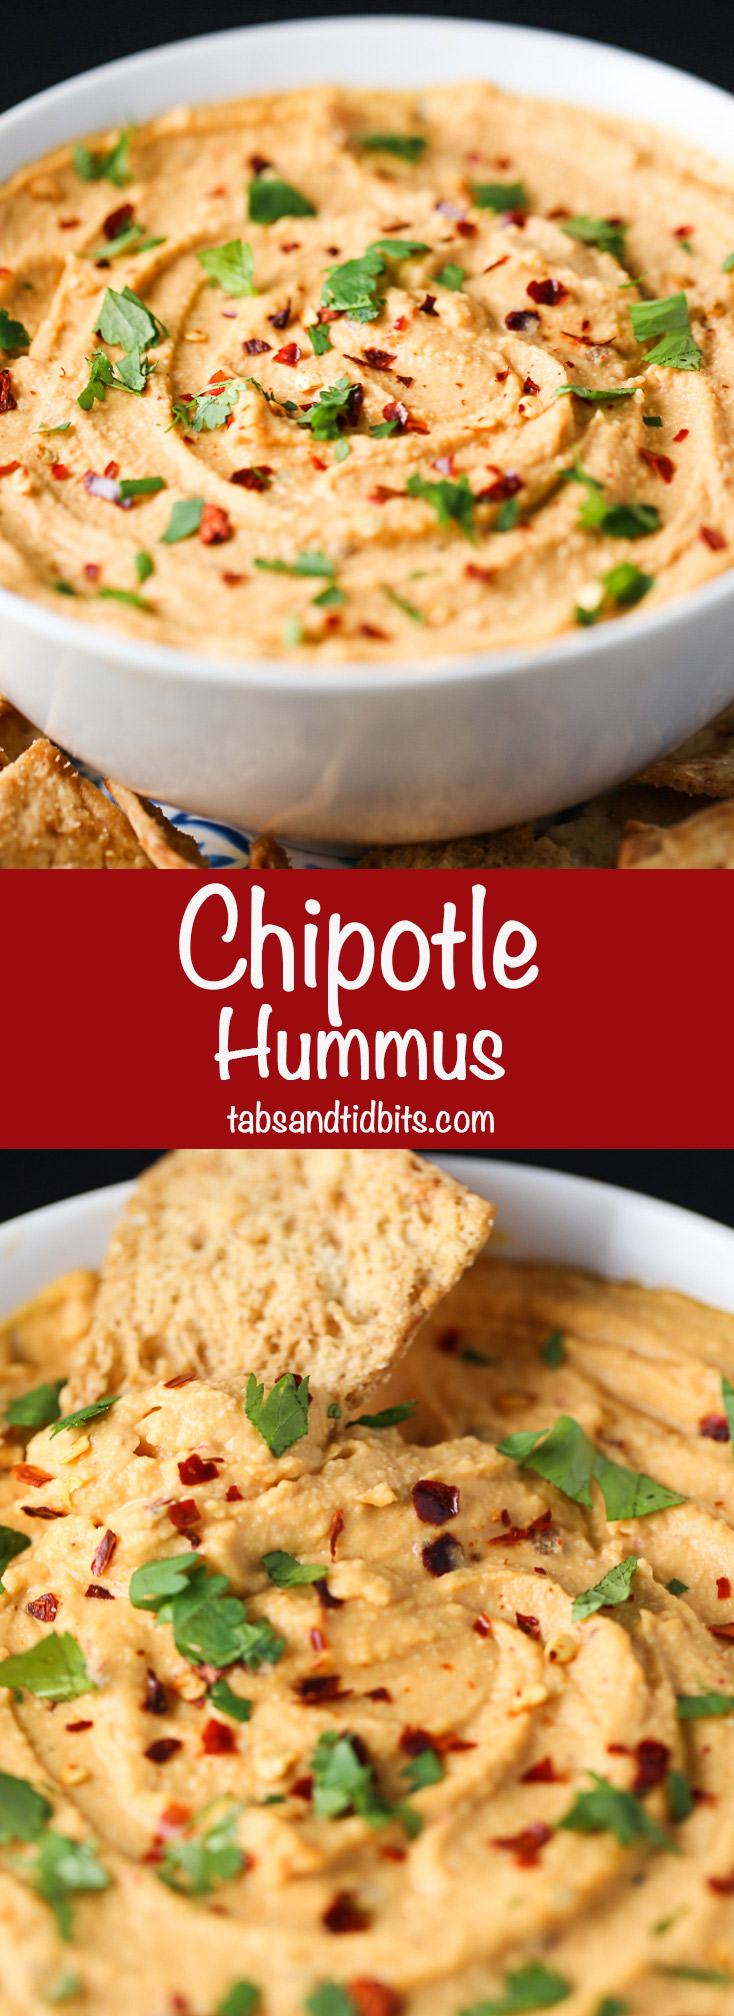 Chipotle Hummus-Deliciously spicy & smoky!